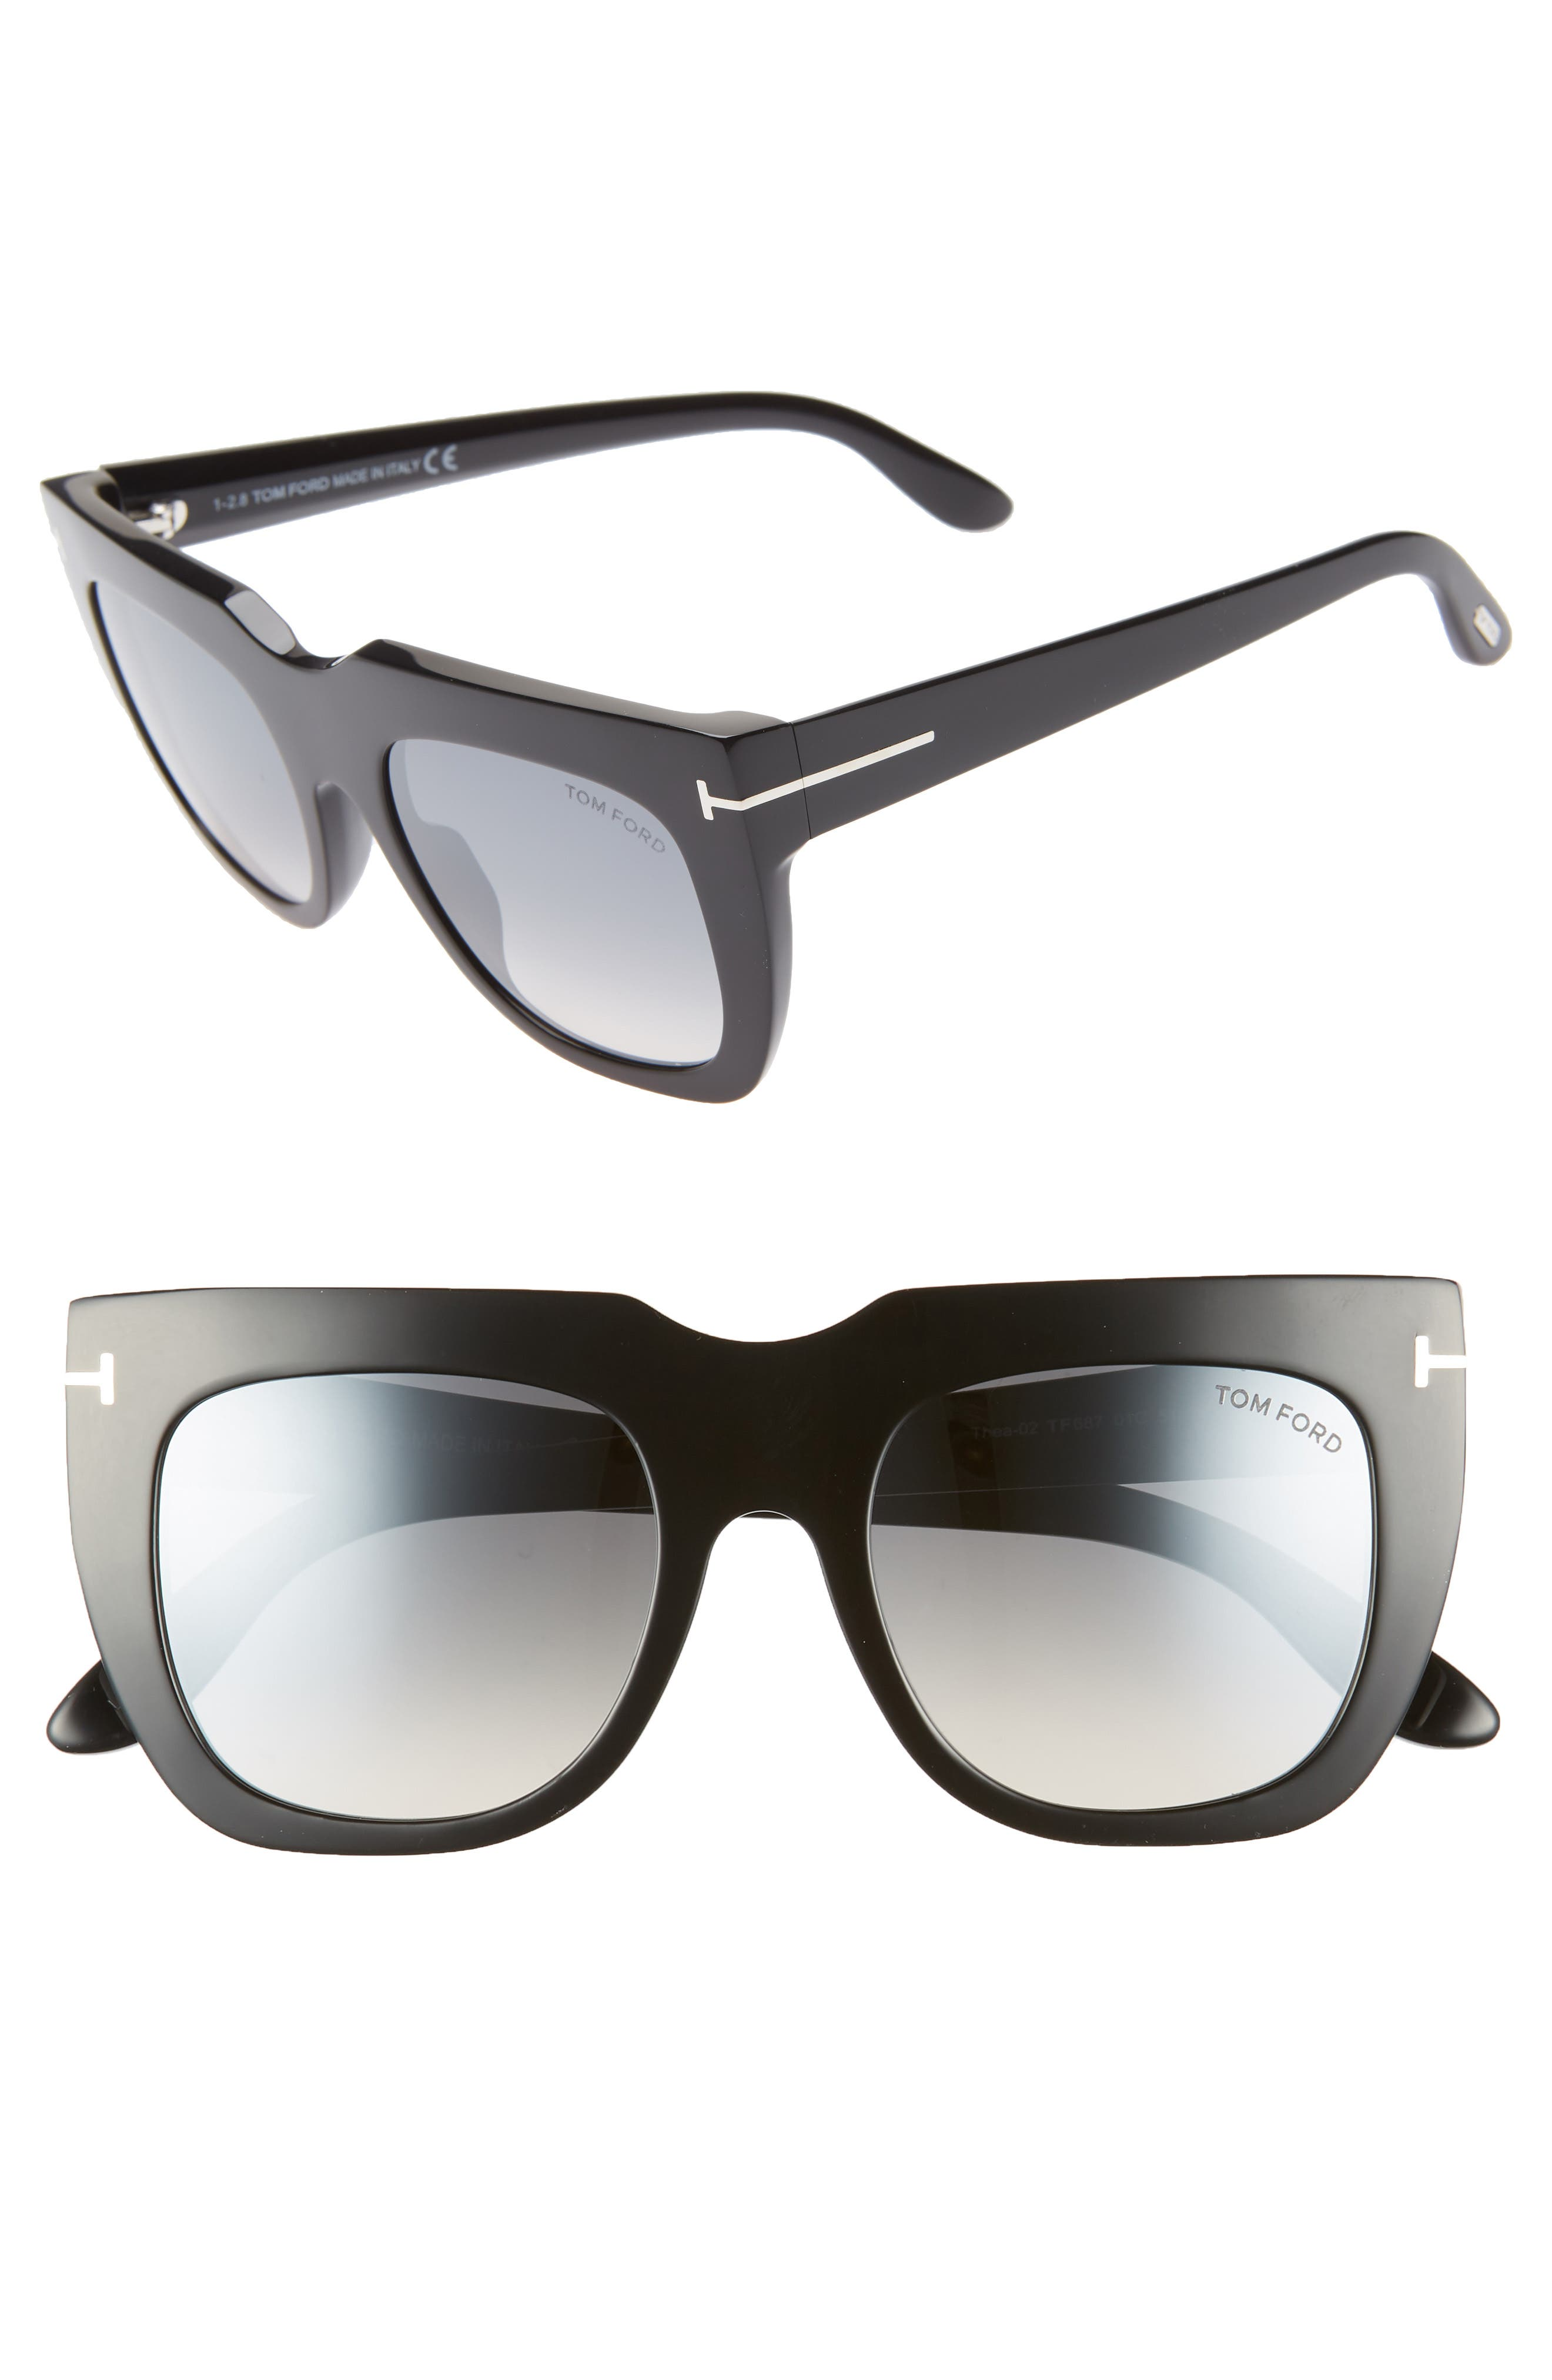 Tom Ford Thea 51Mm Mirrored Cat Eye Glasses - Shiny Black/ Grey W Silver